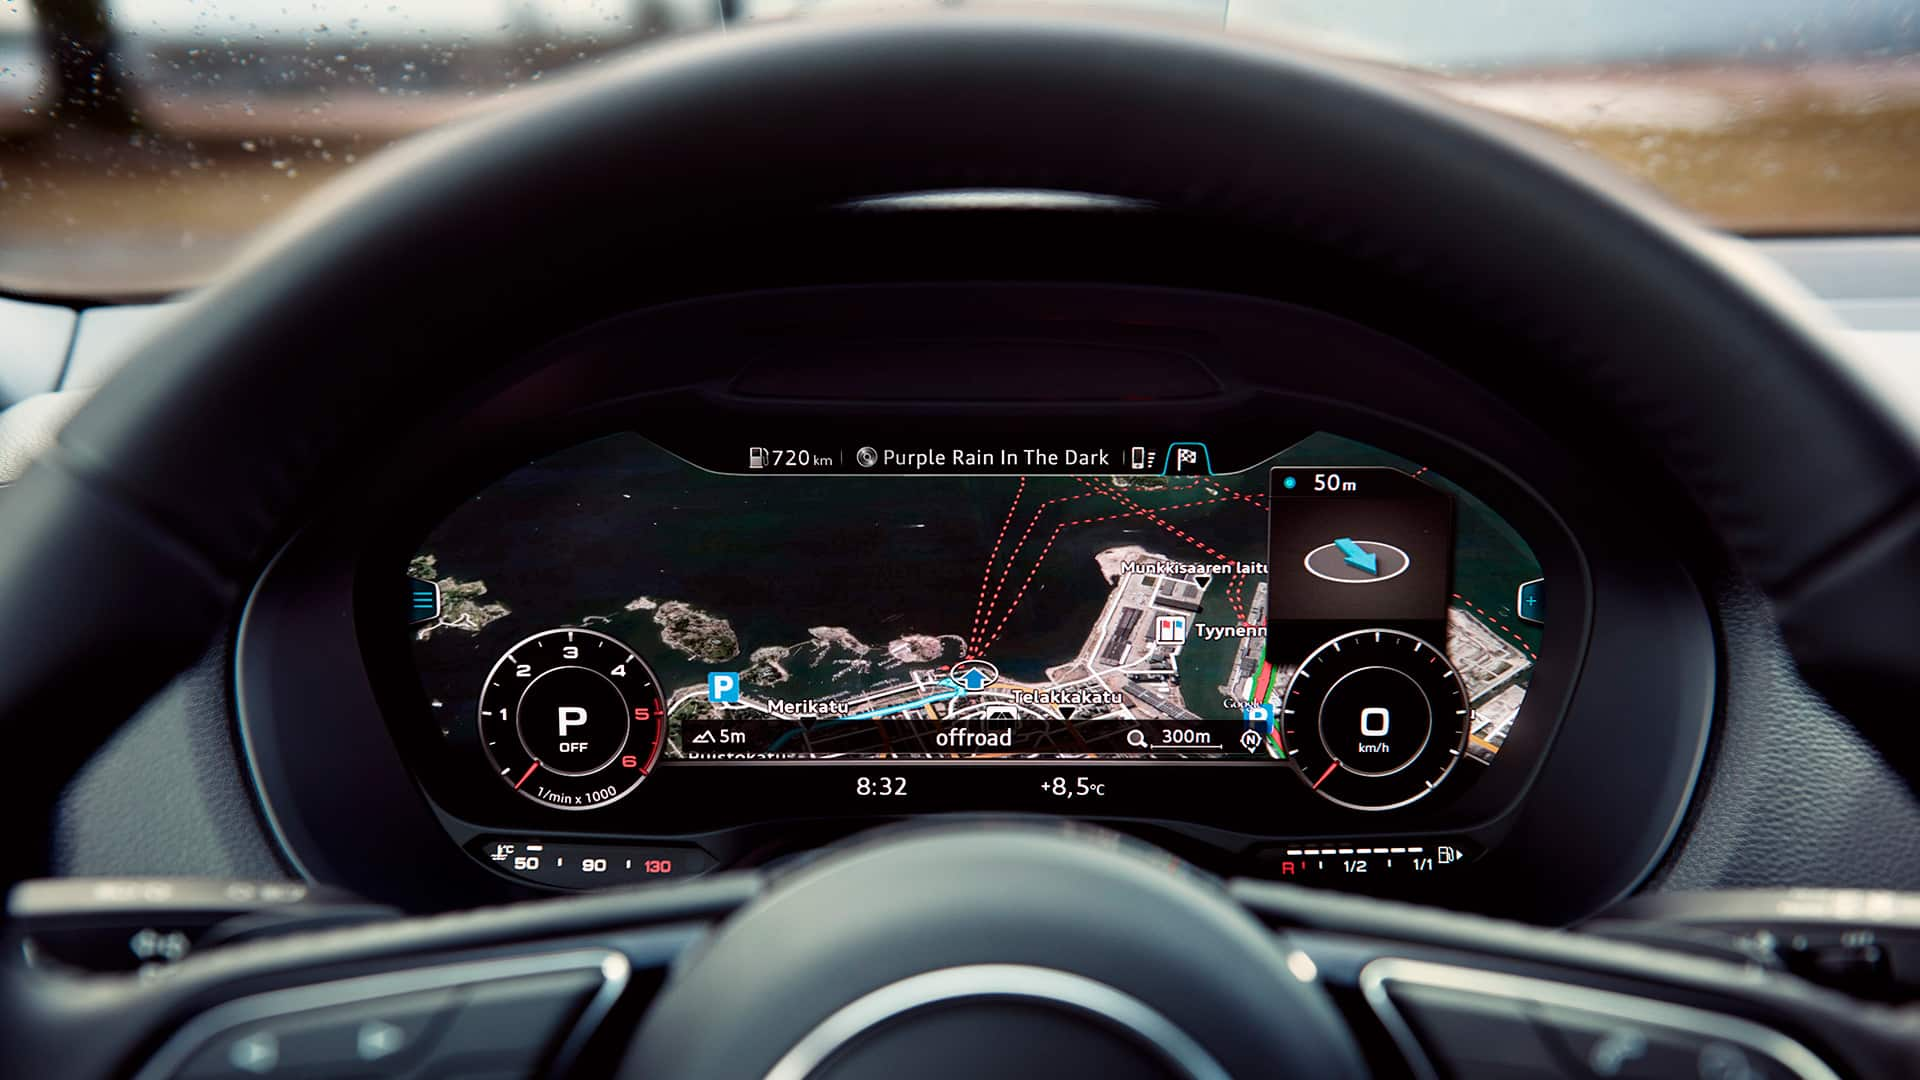 operating concept and infotainment